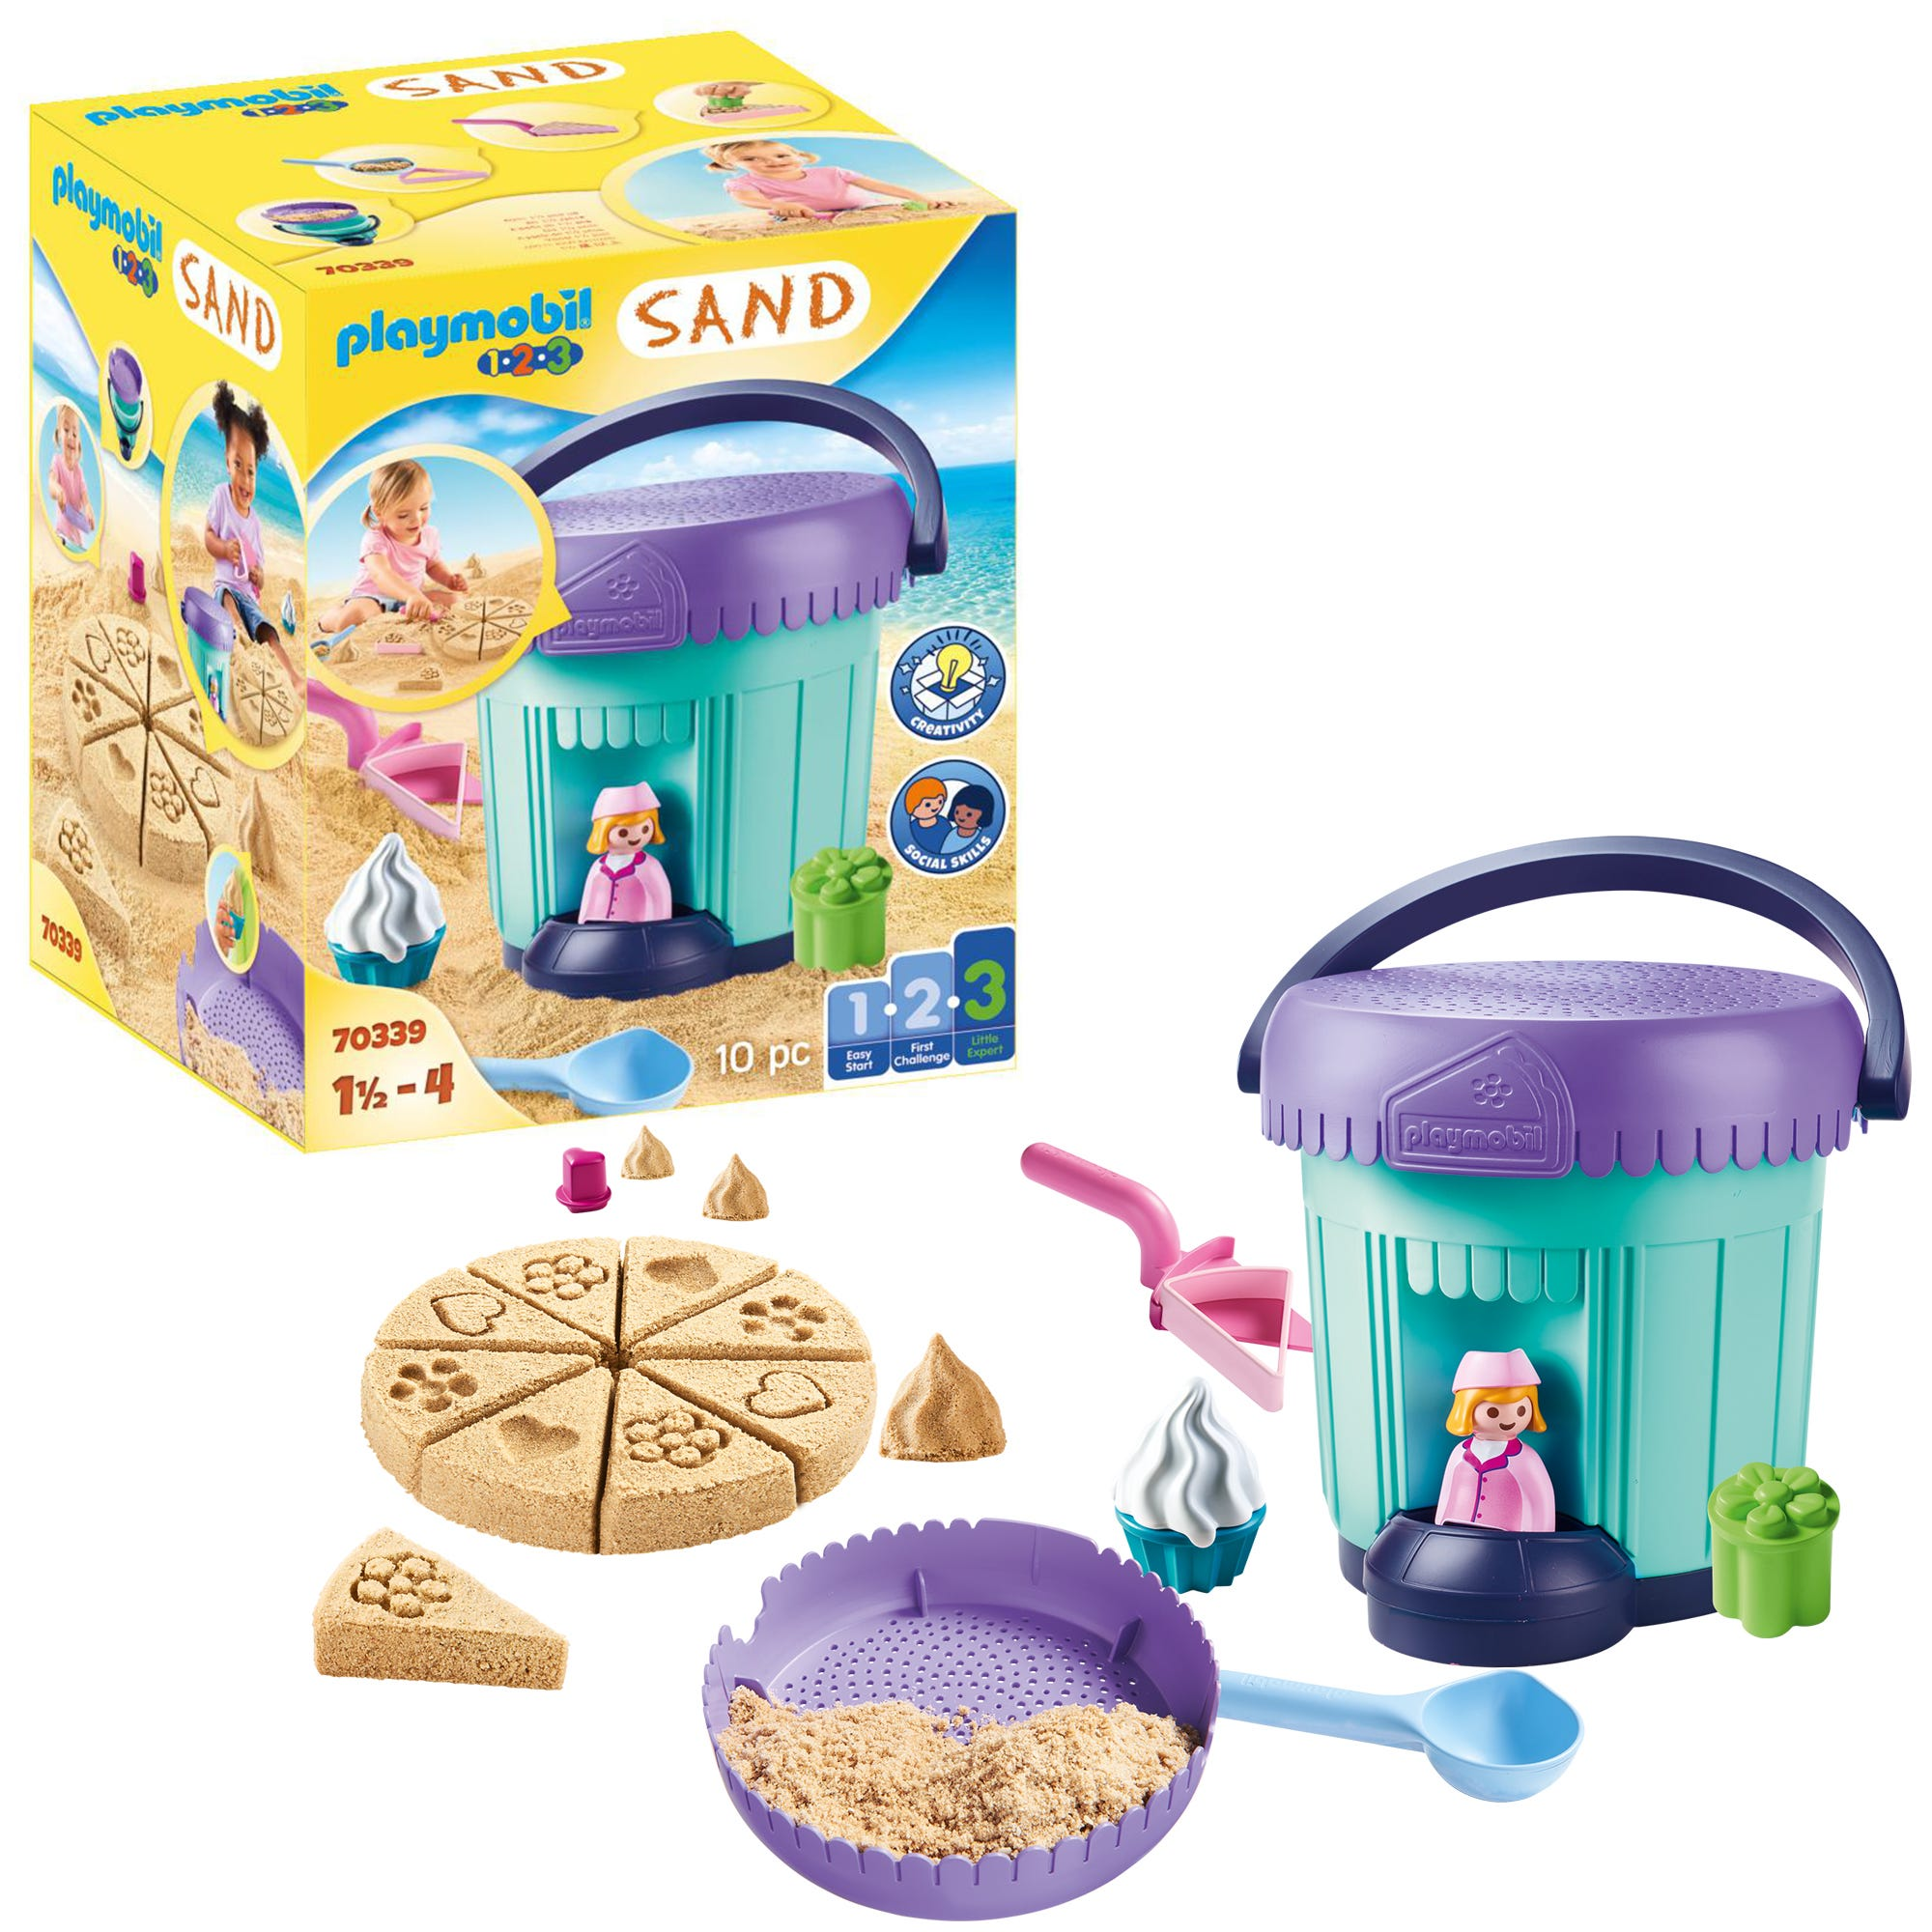 Playmobil 1.2.3 70339 SAND Bakery Sand Bucket For 18+ Months